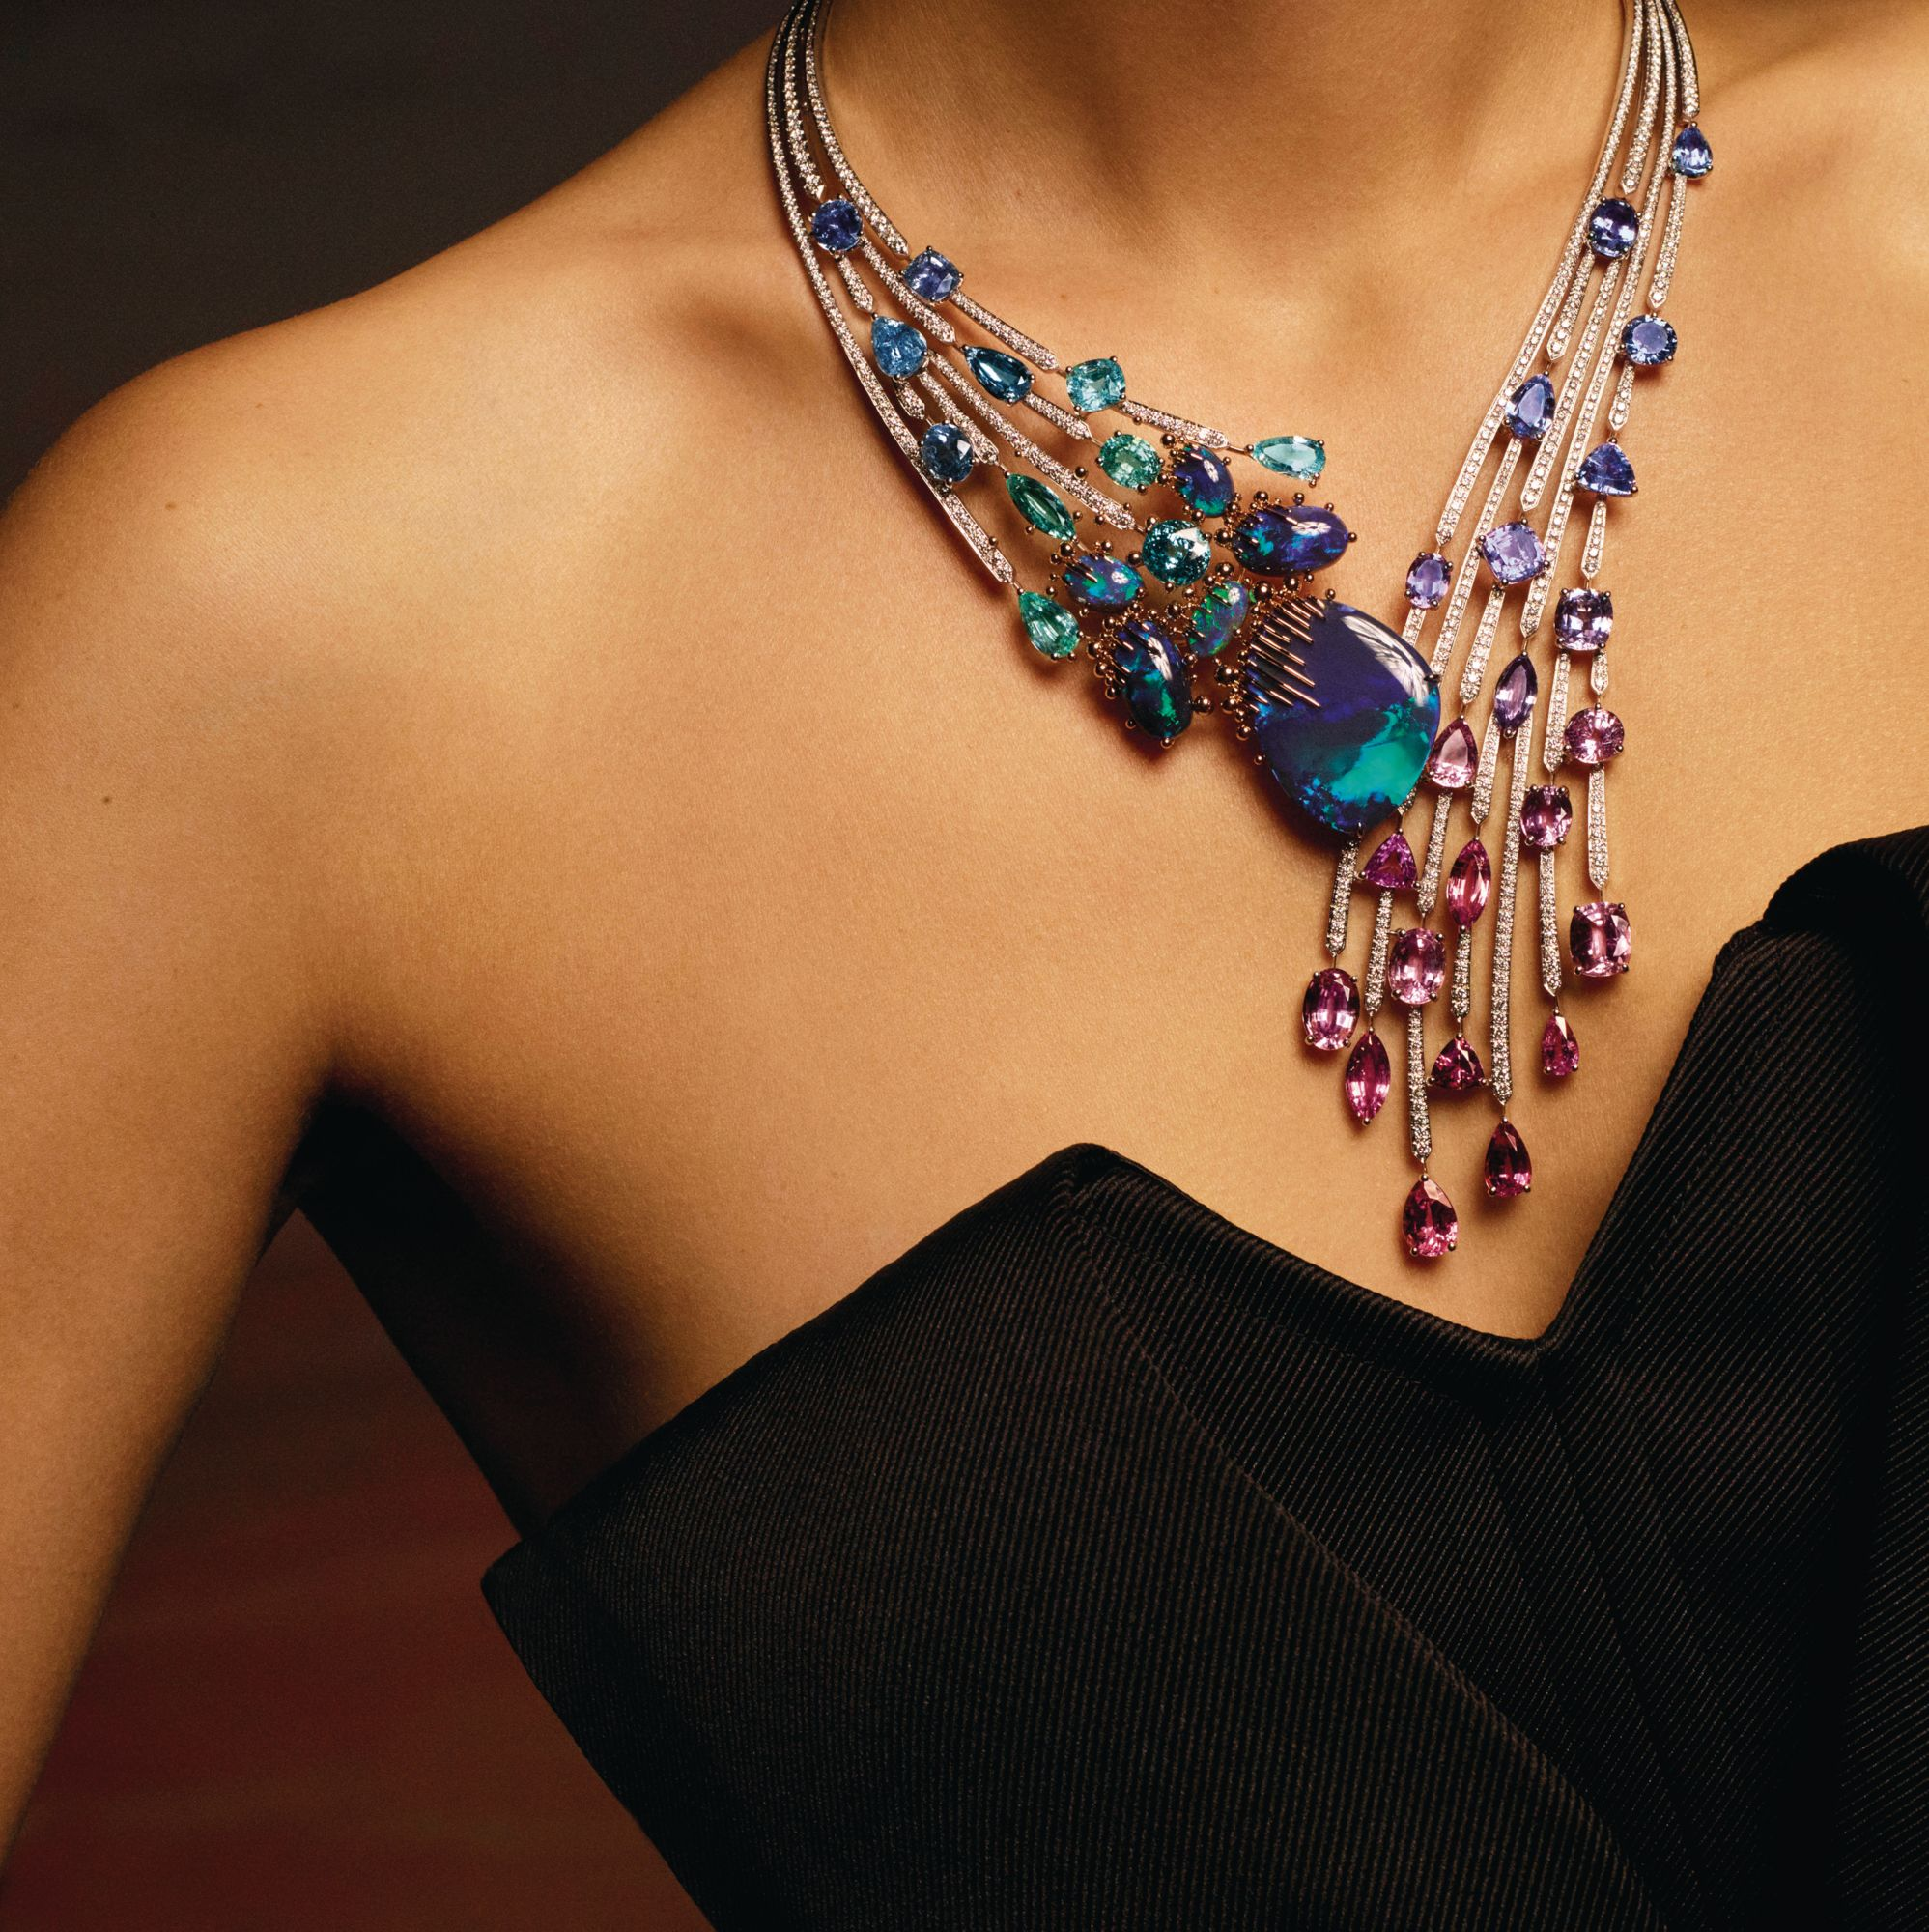 Chaumet Passages necklace in white and rose gold set with black opals, Paraiba tourmalines and diamonds